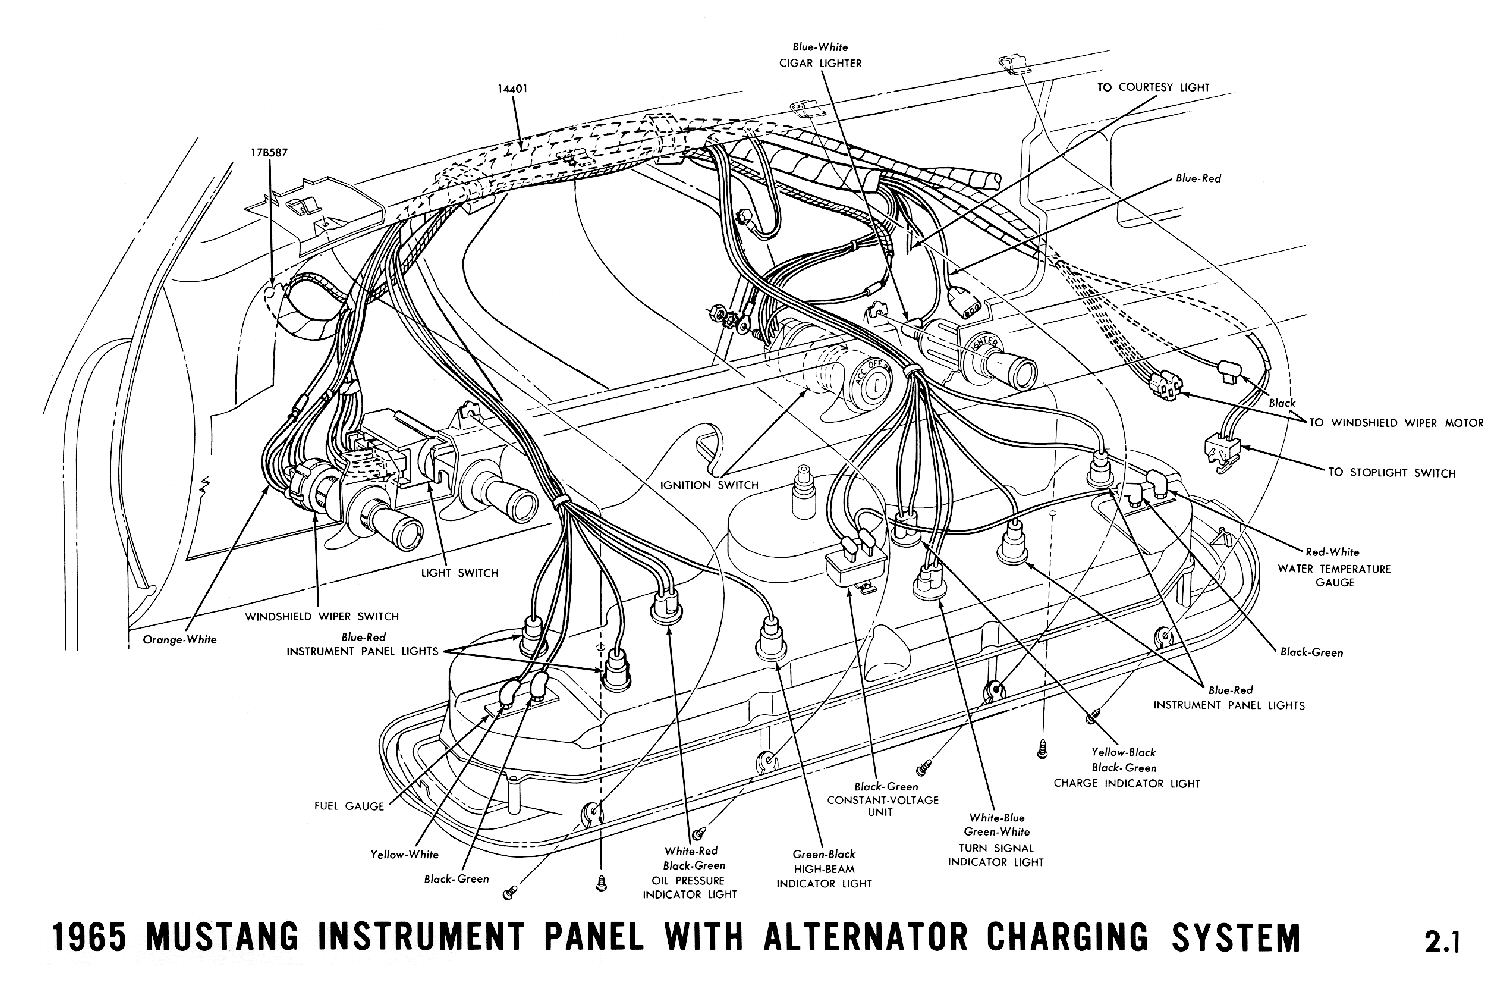 1965 Chevelle Wiring Diagram from averagejoerestoration.com